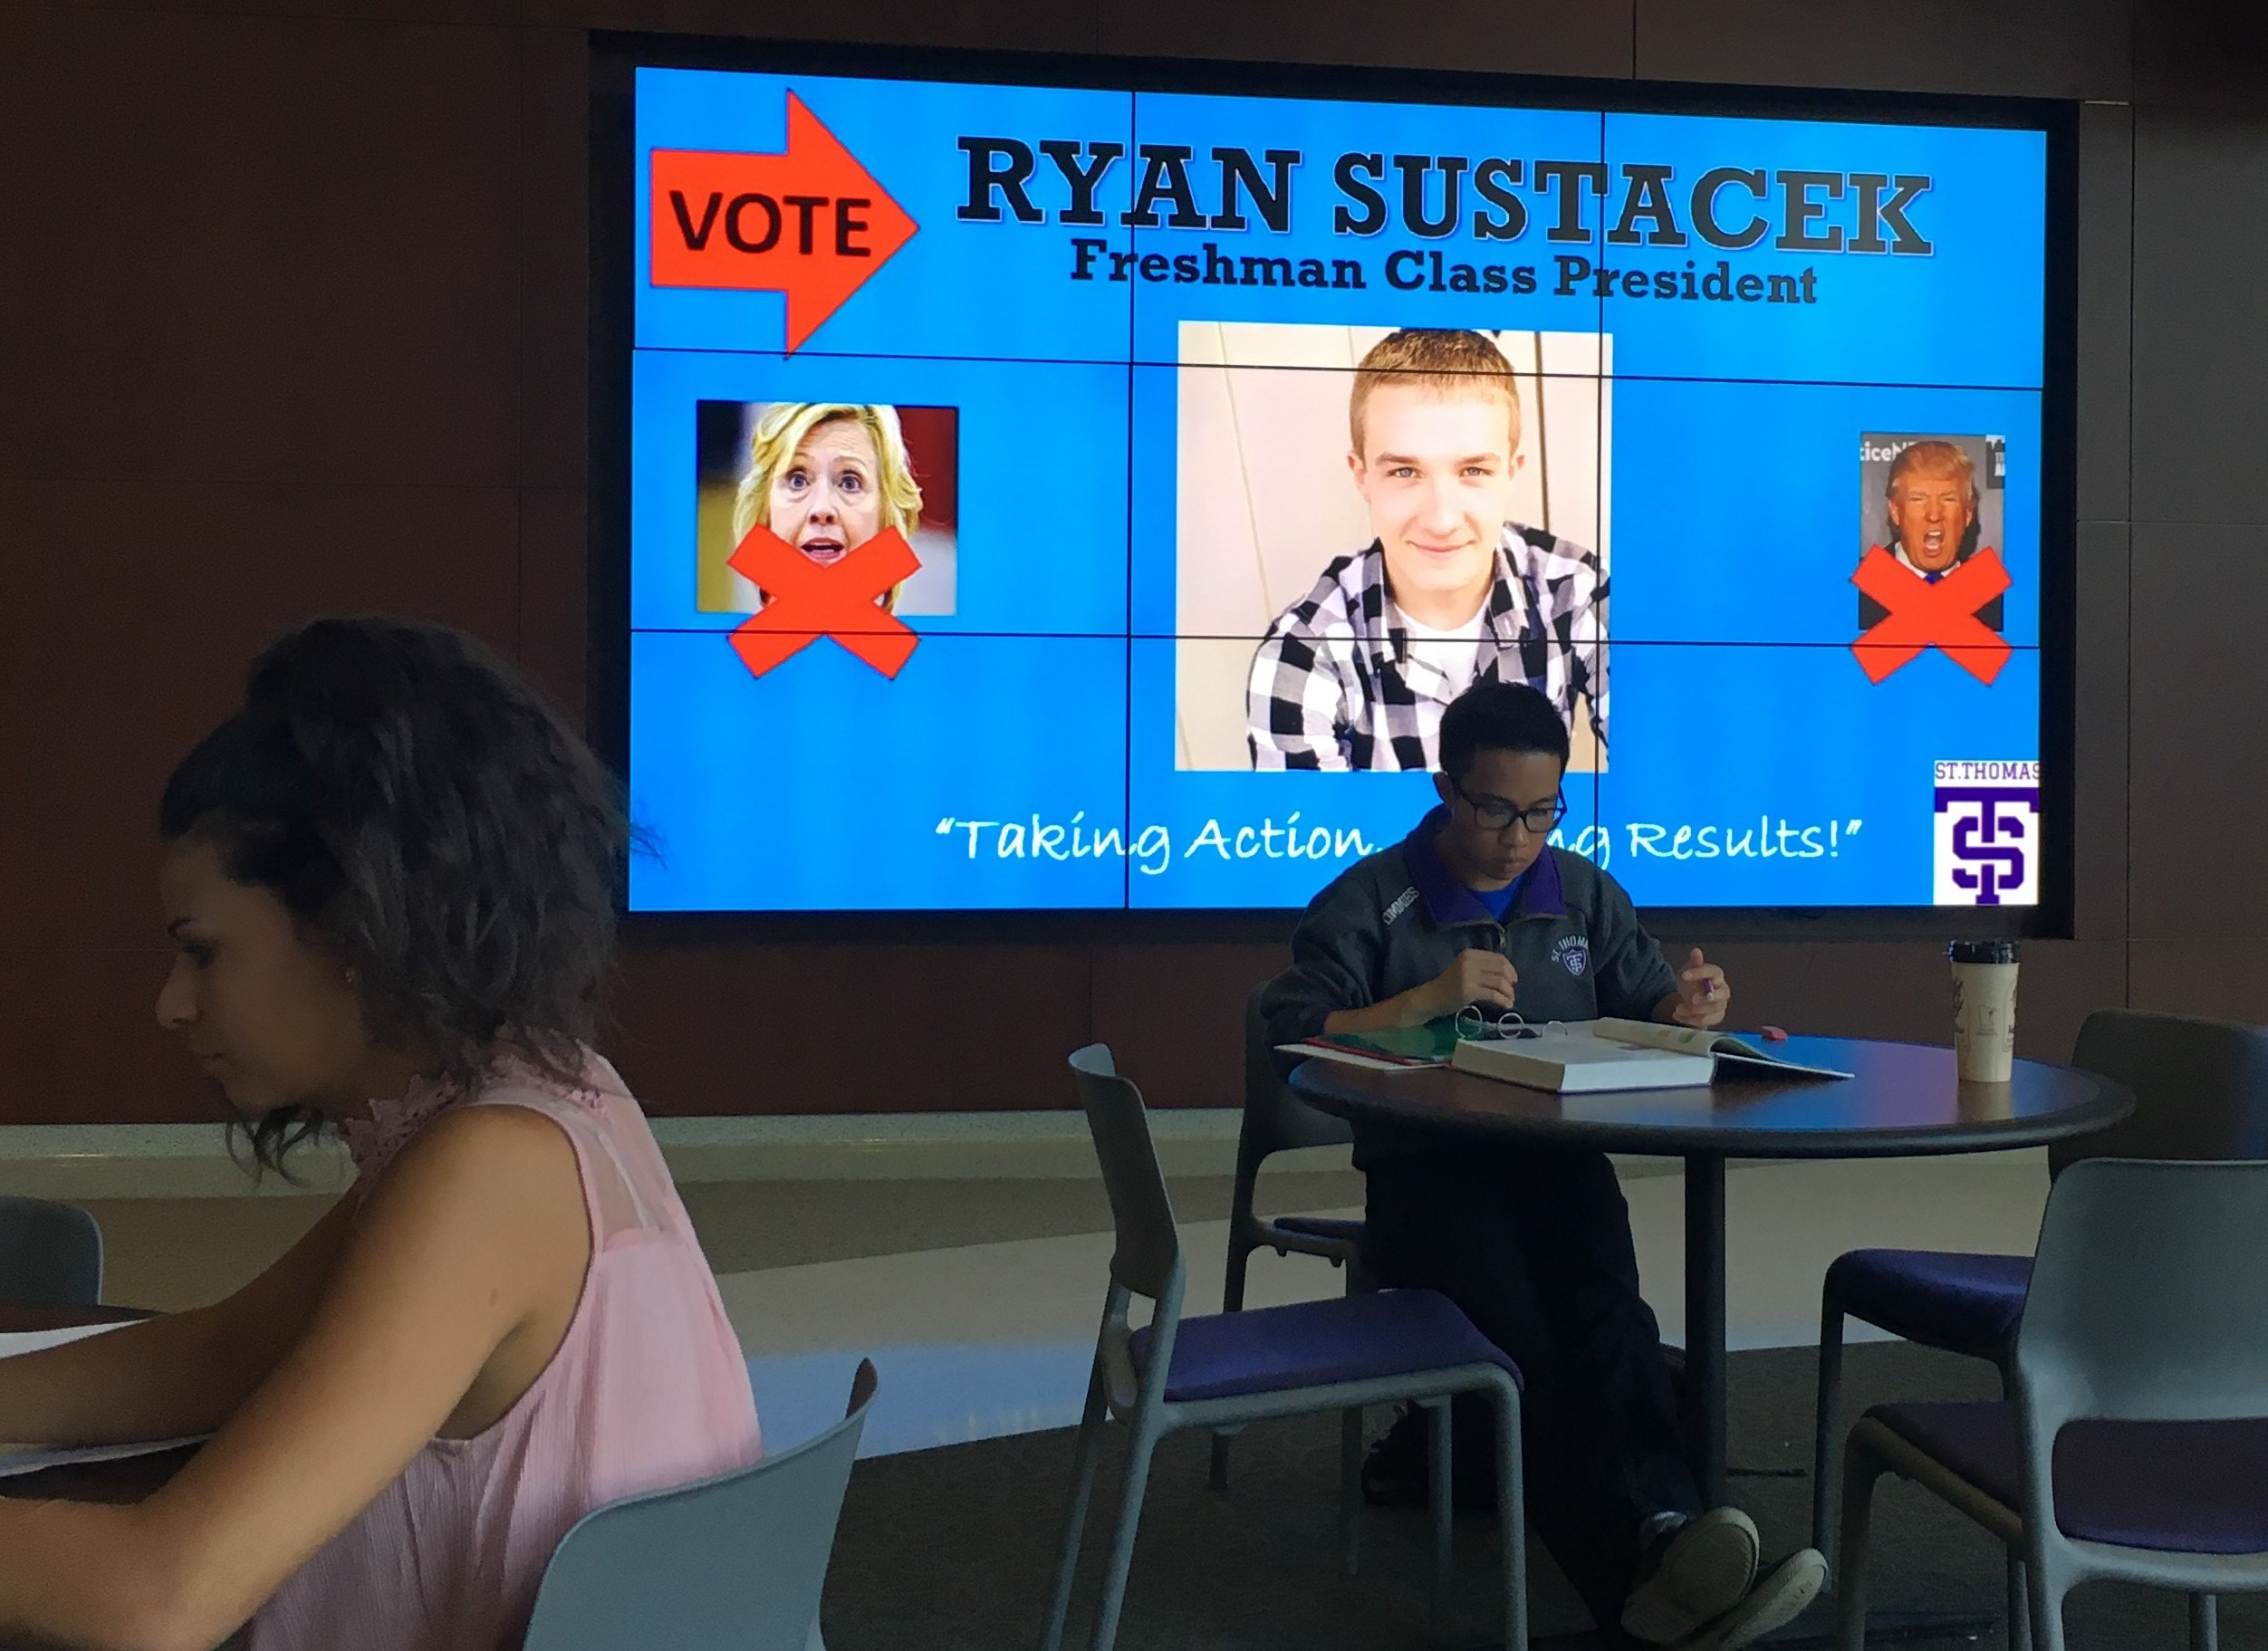 Humor based campaign leads to a win for the new freshman class president